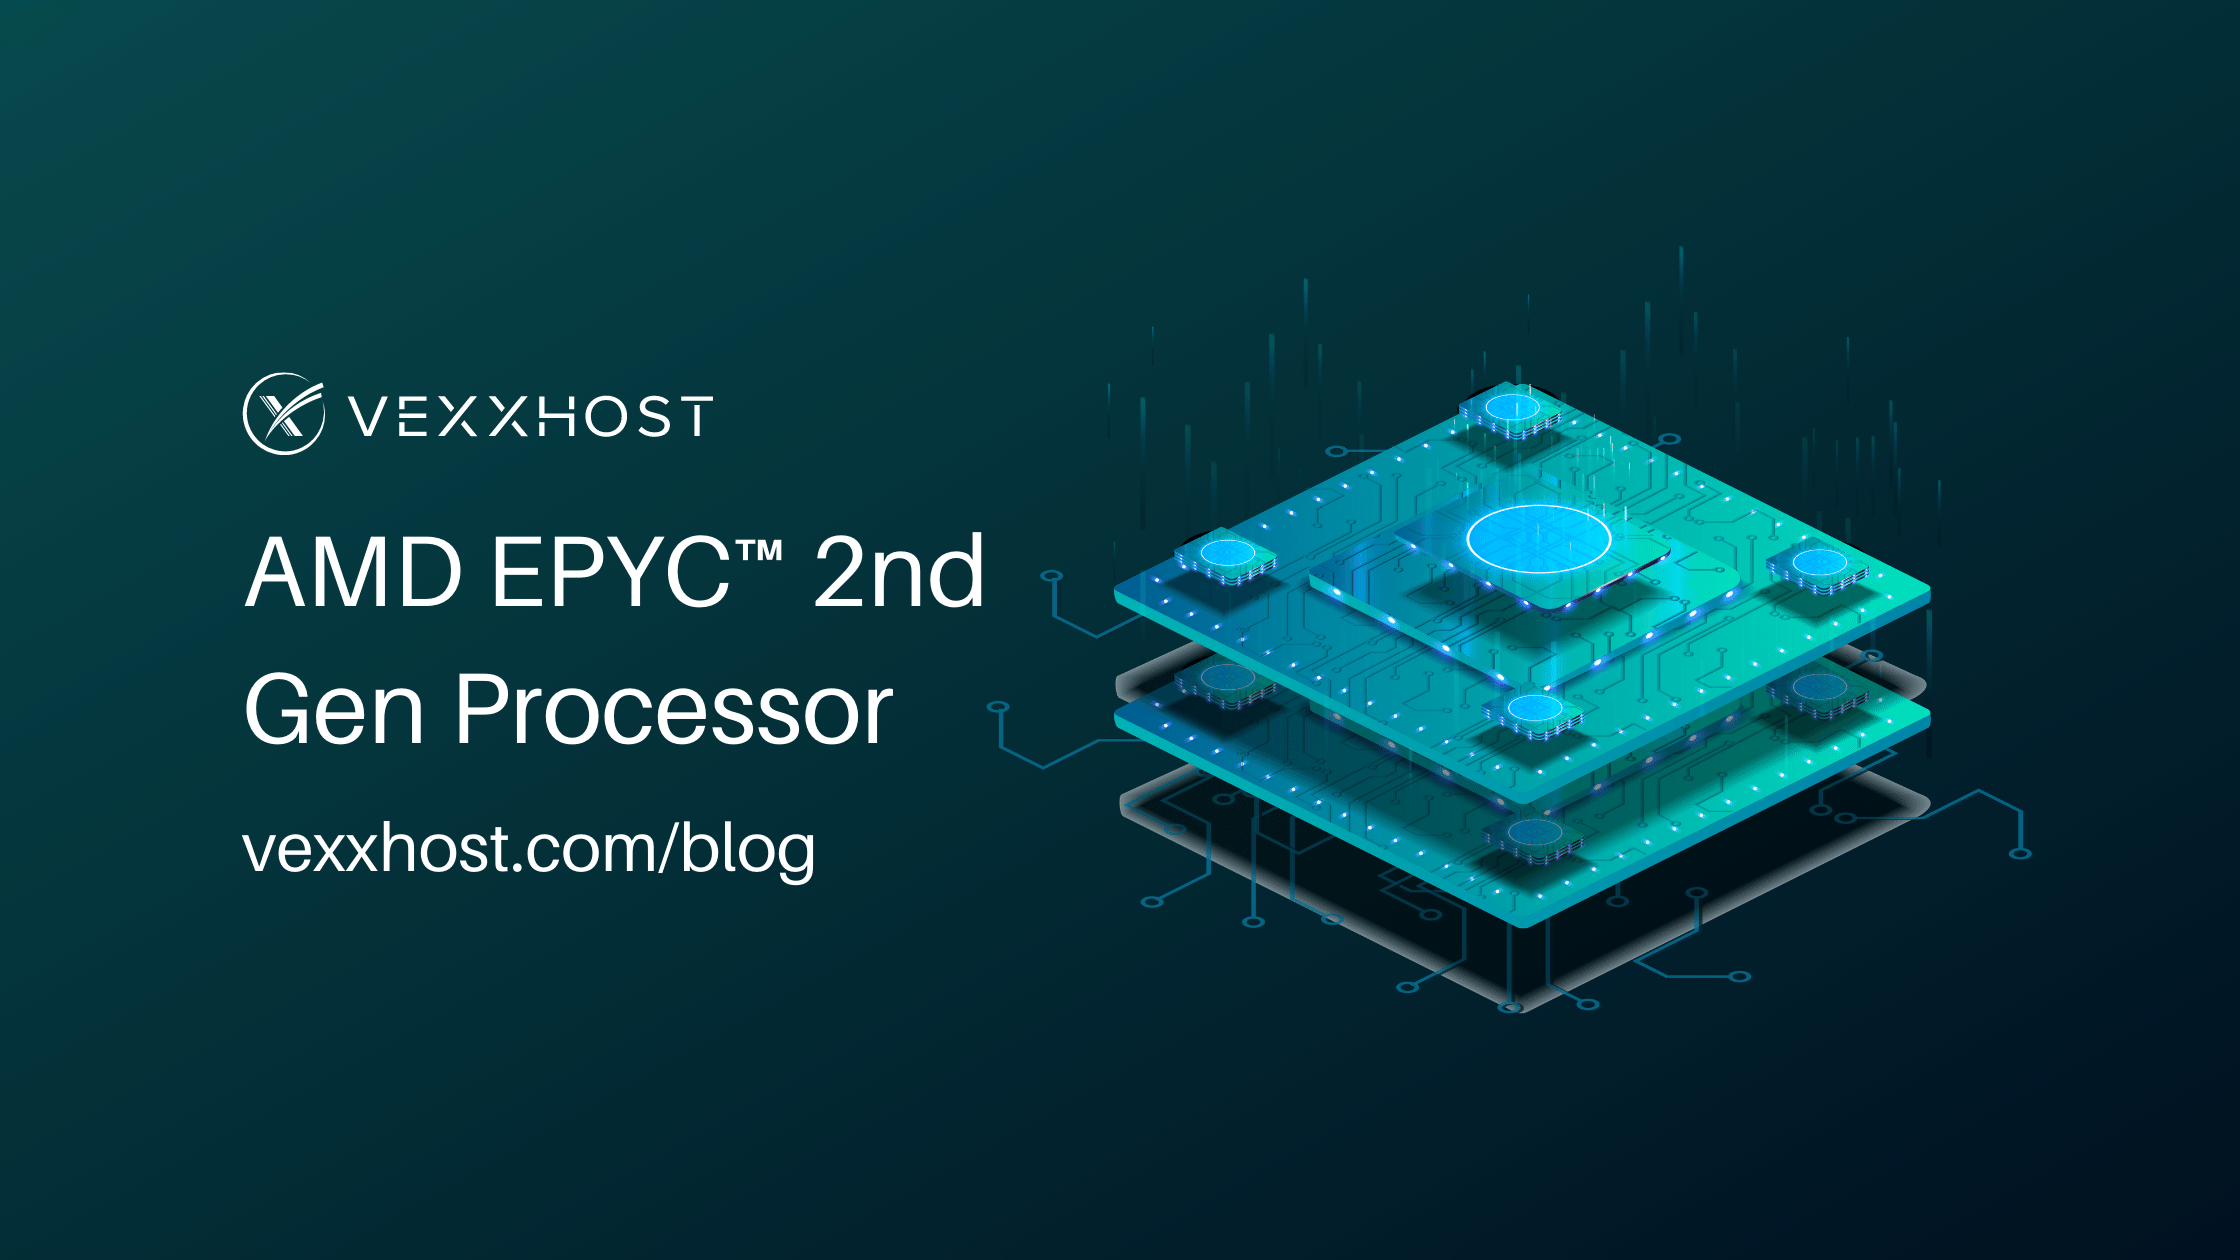 AMD-EPYC-2nd-Gen-Processor